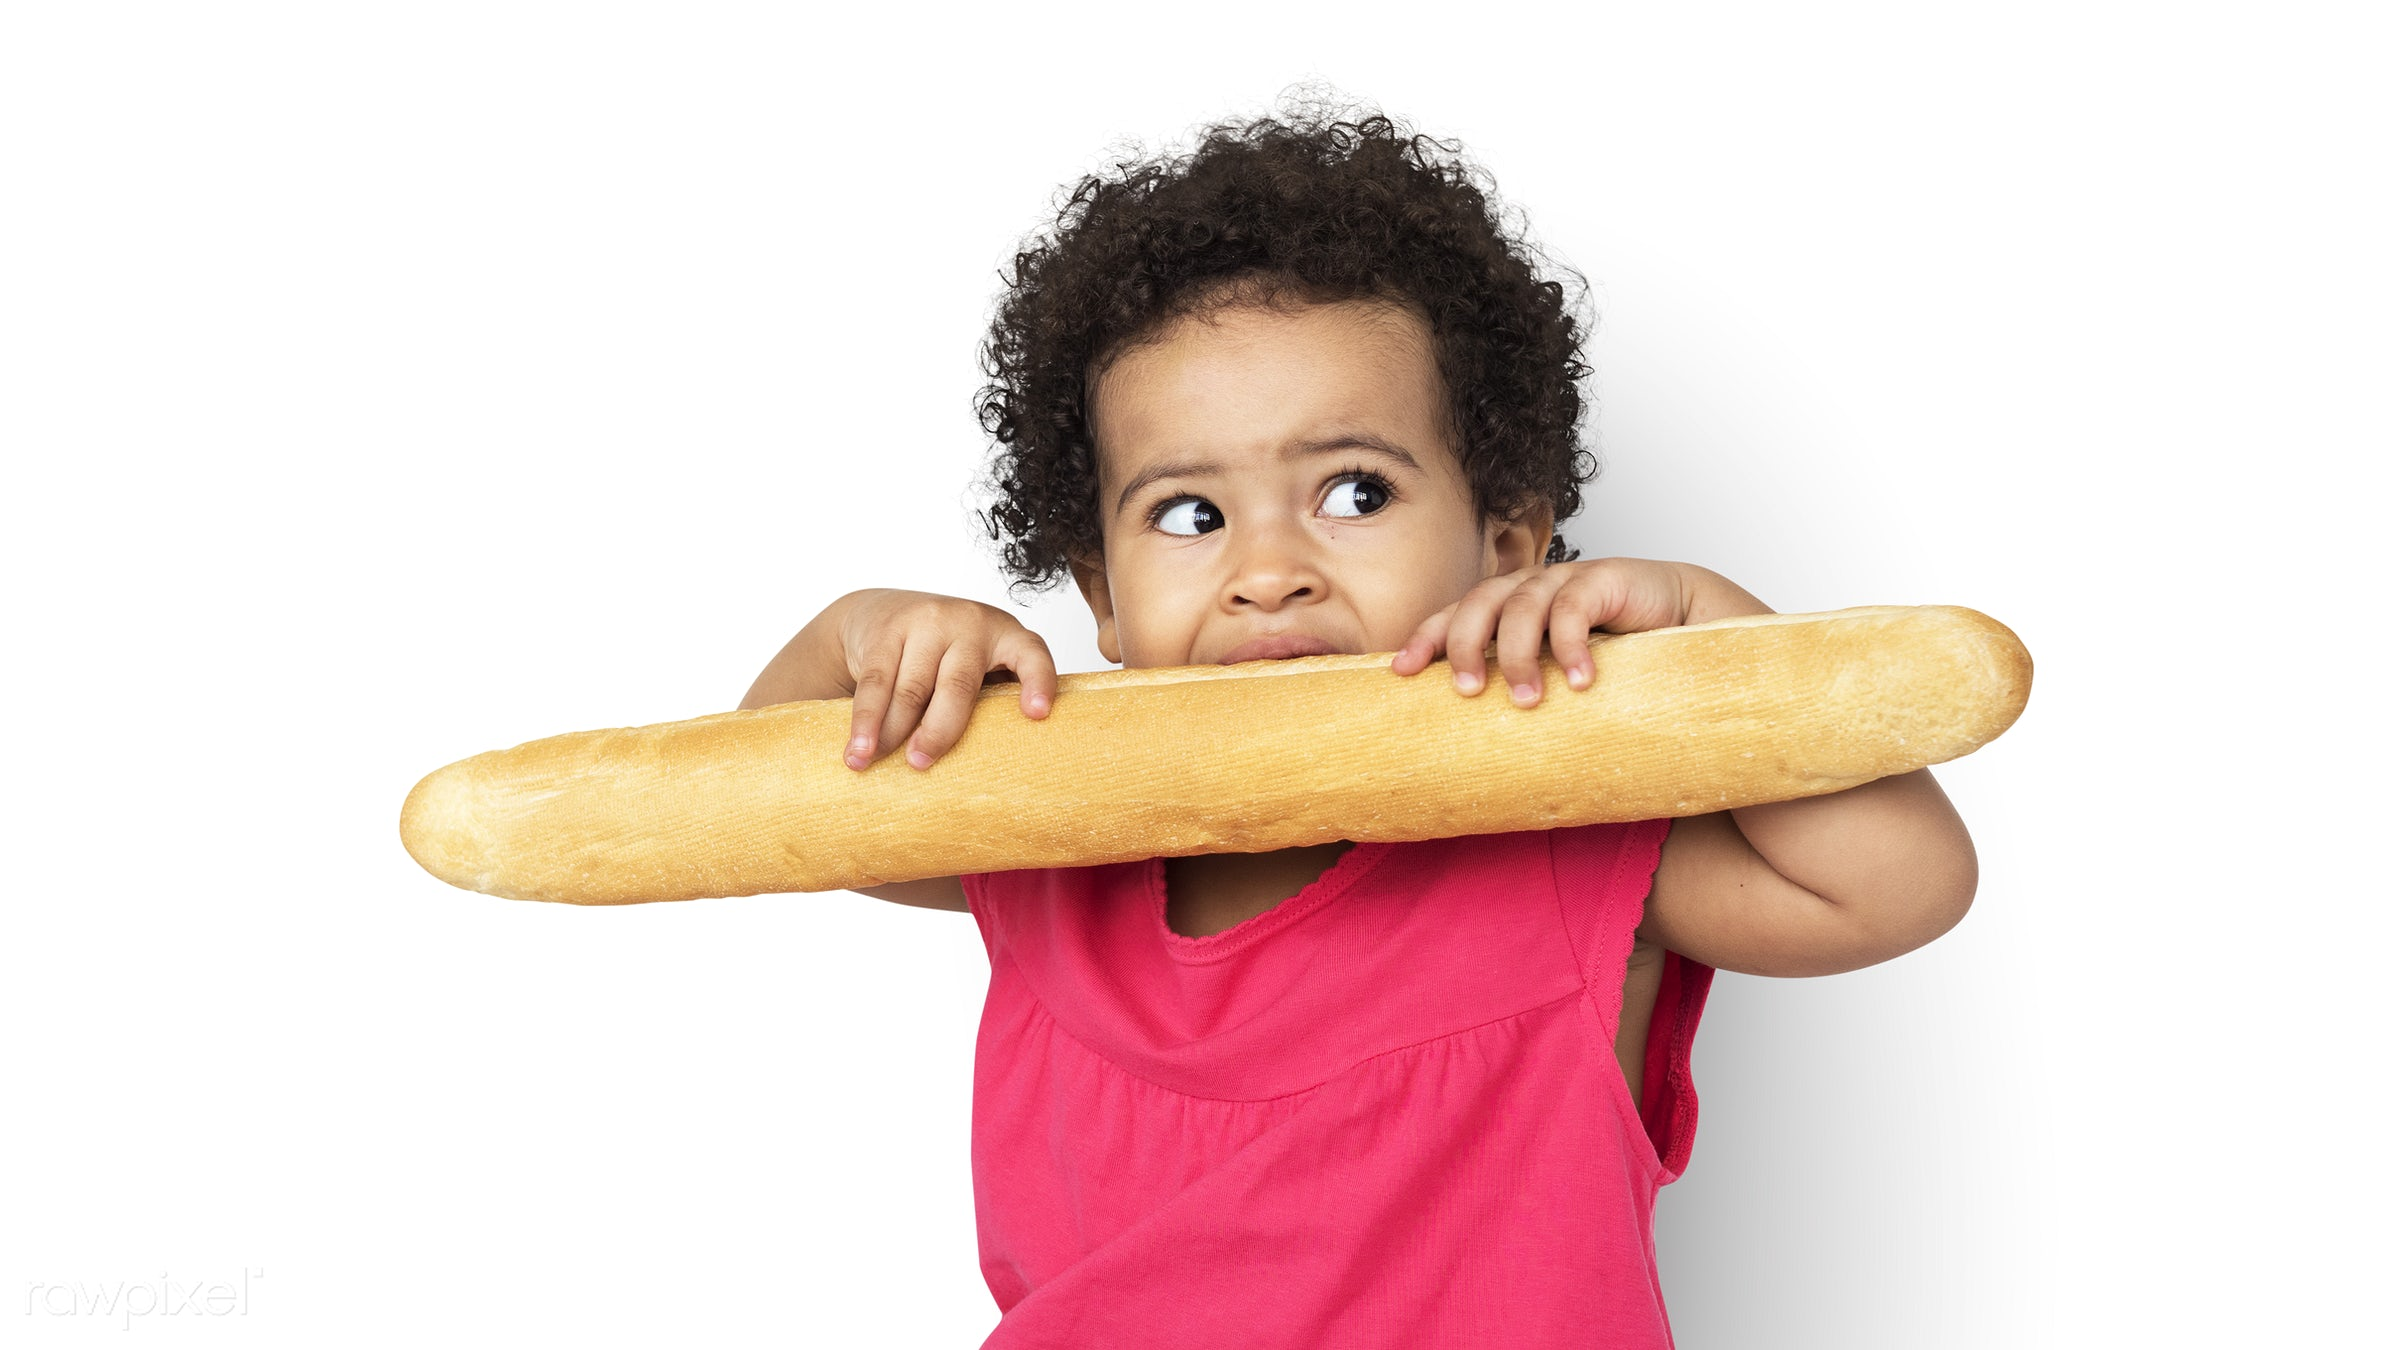 expression, studio, person, hug, isolated on white, little, cute, people, kid, child, pose, girl, joyous, happy, bread,...